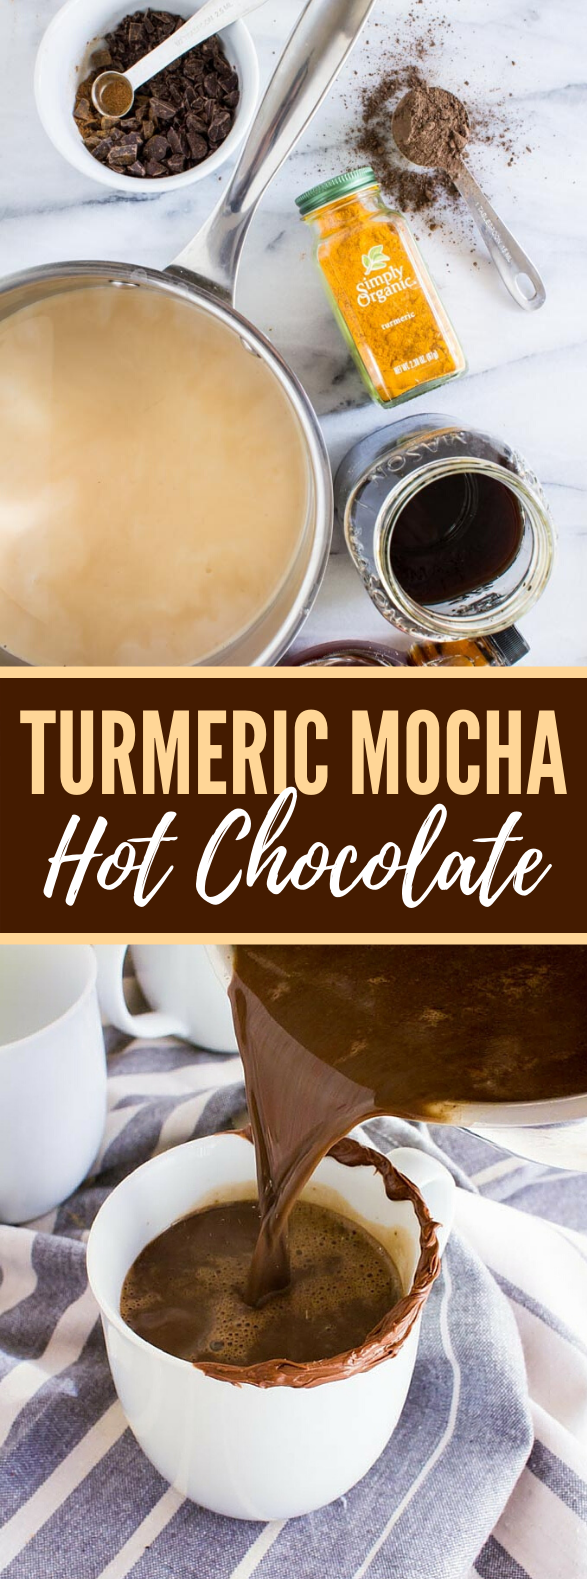 Turmeric Mocha Hot Chocolate #drinks #desserts